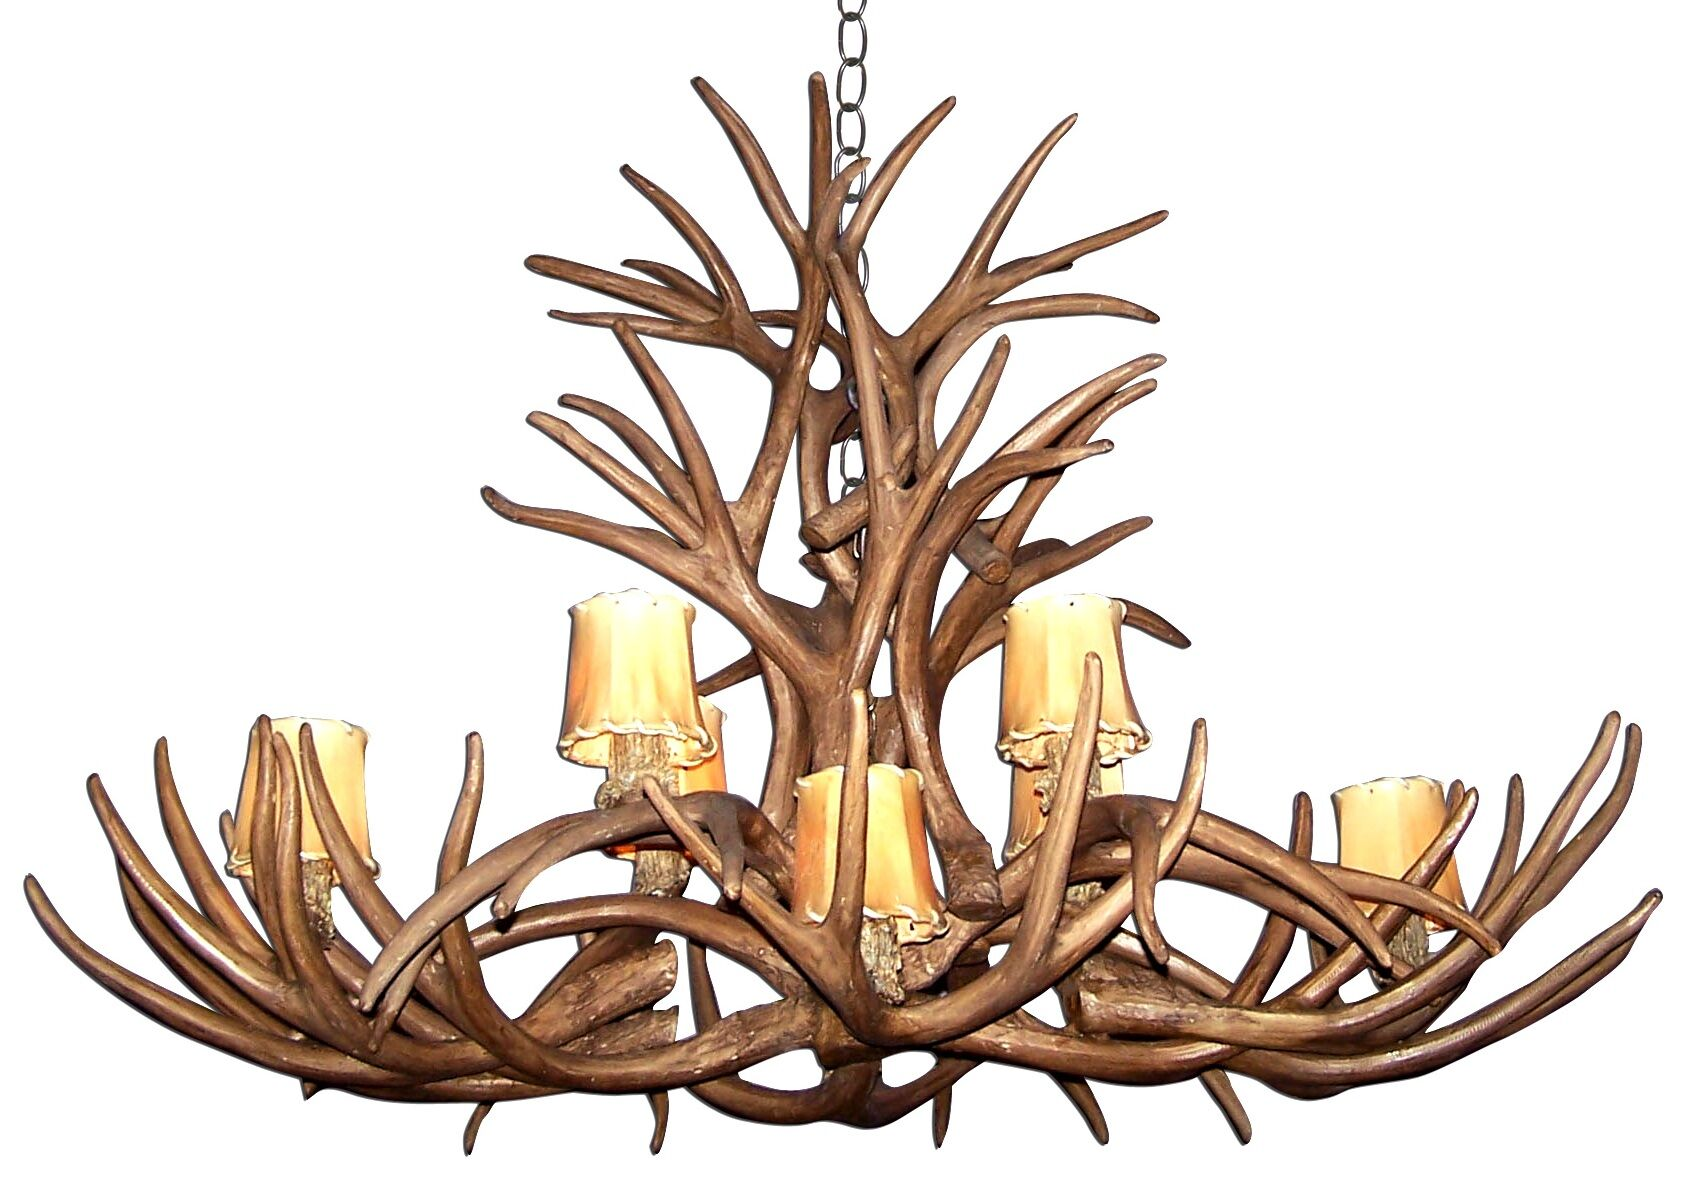 Attwood Antler Mule Deer Inverted Oblong 8-Light We have associated to option Chandelier Finish: Black/White, Shade Color: Rawhide, Shade Included: Yes